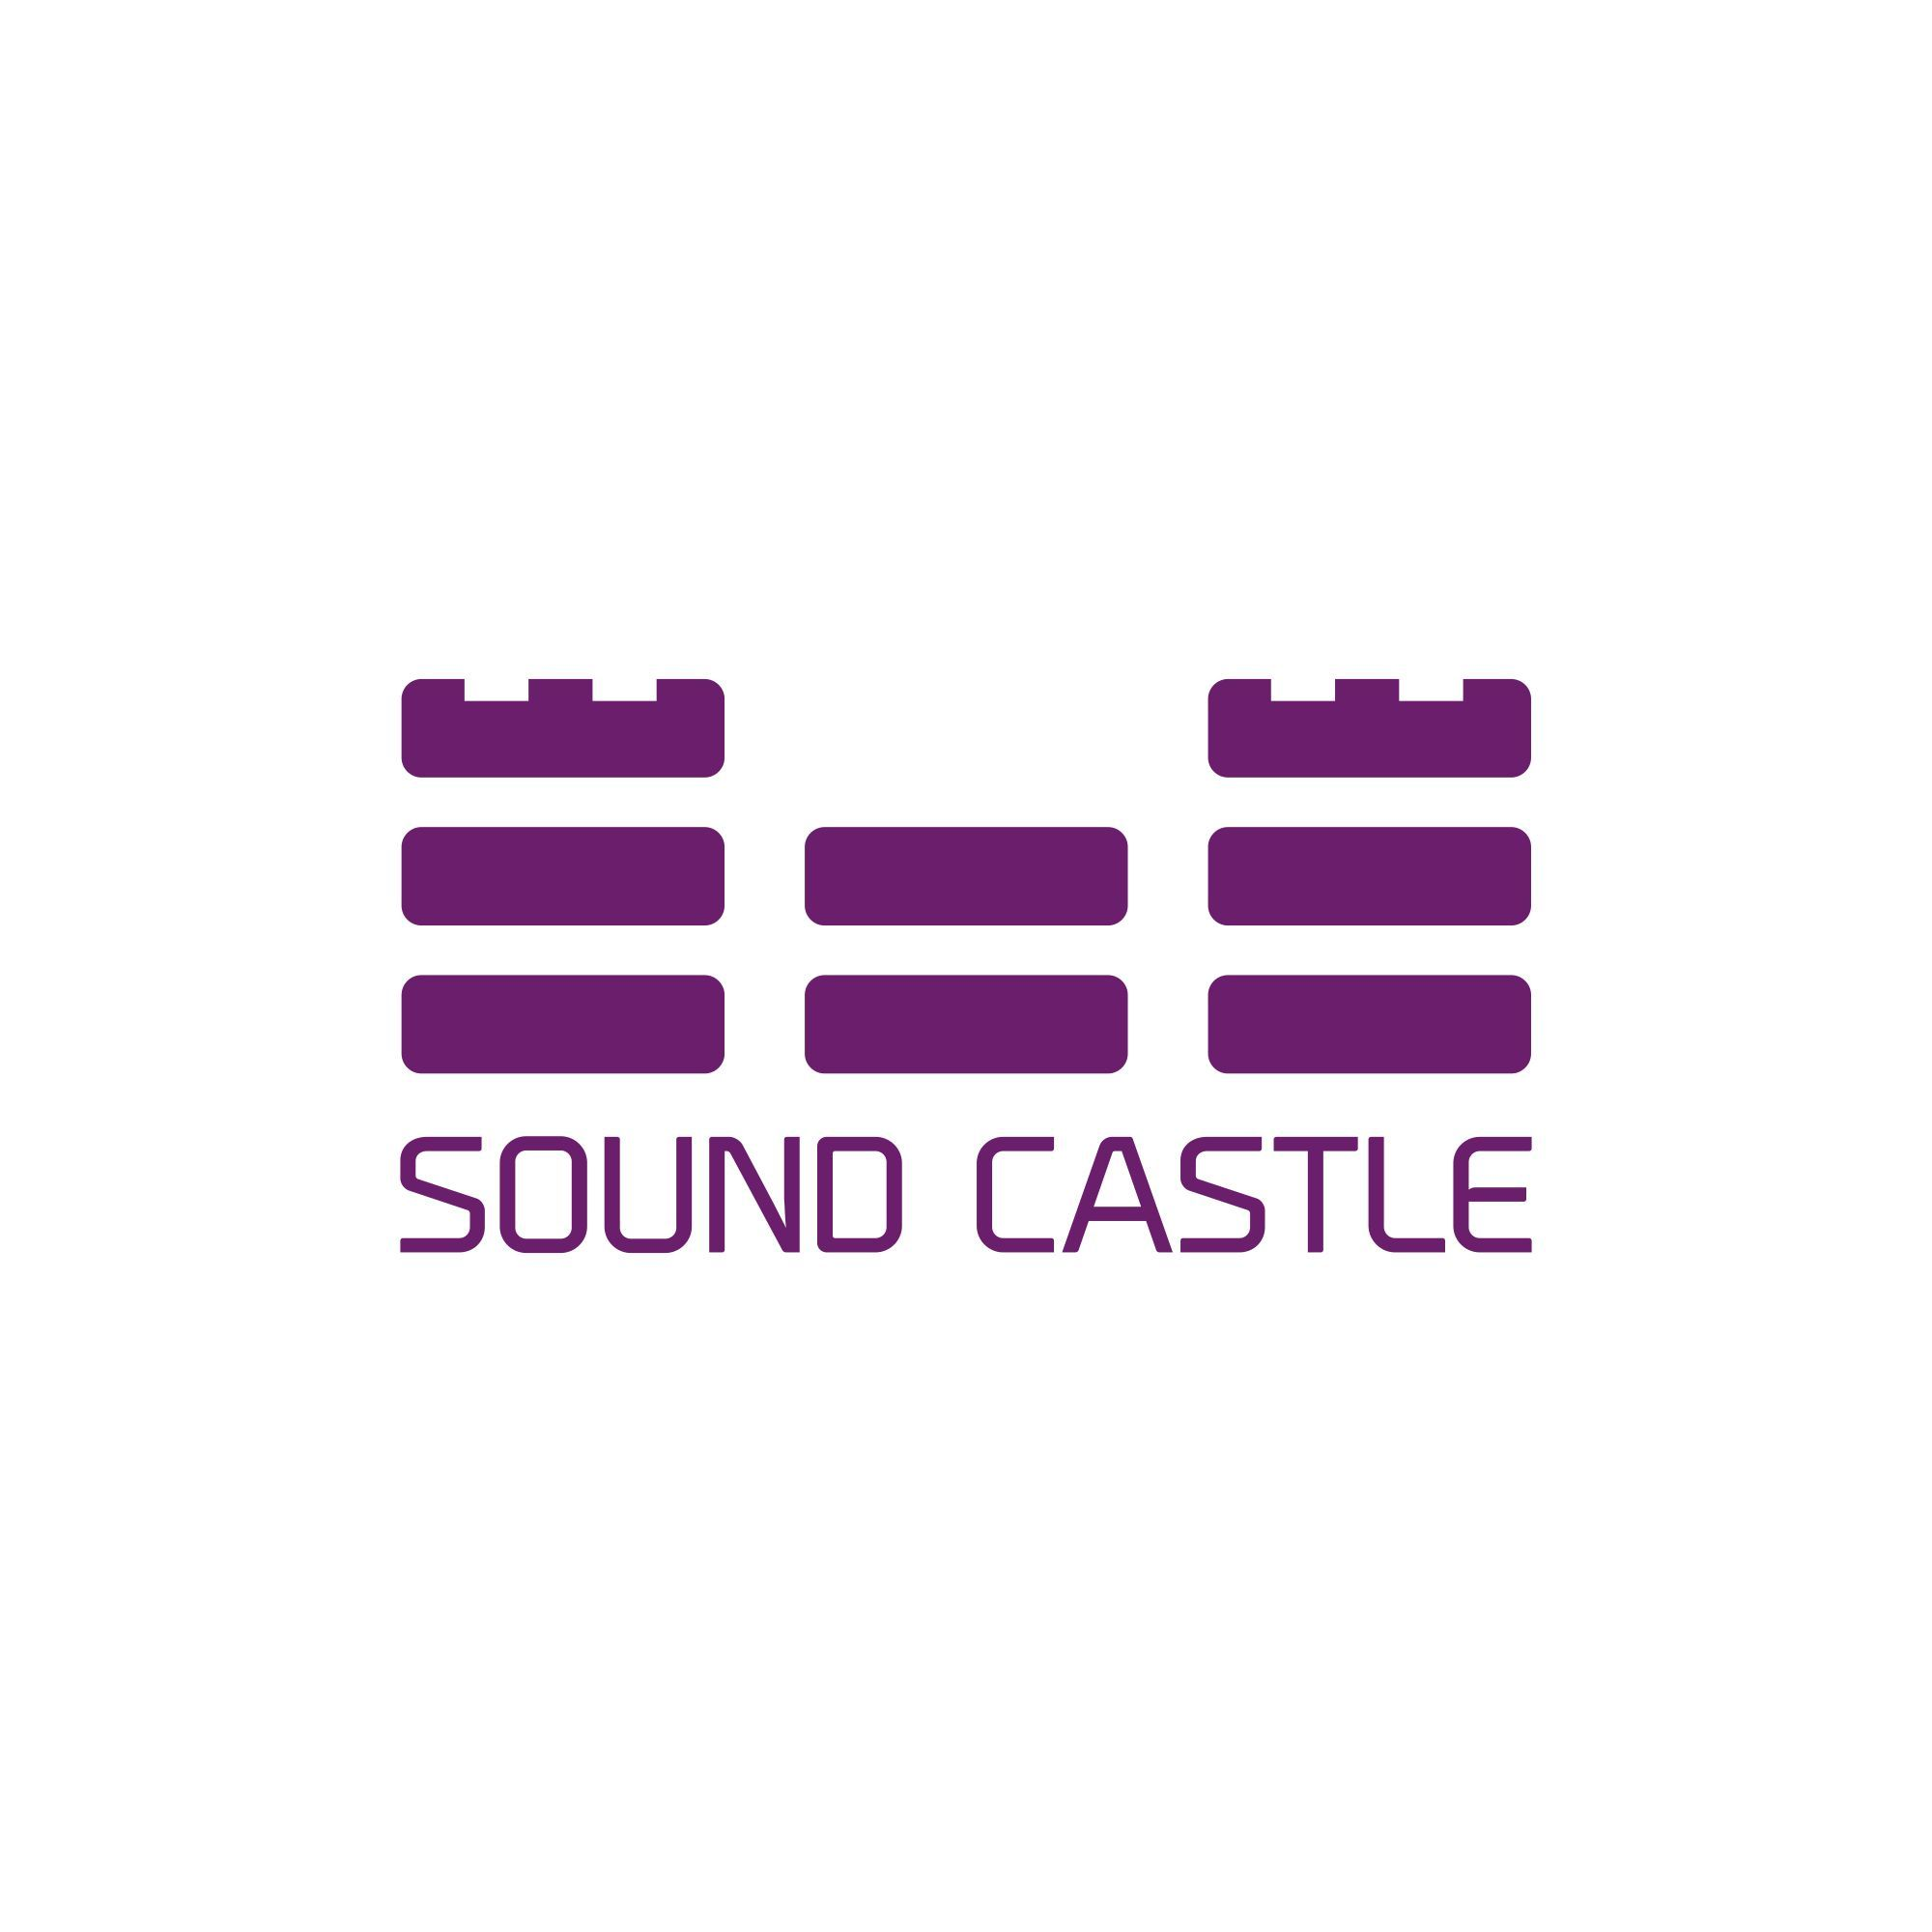 sound castle logo design for an electronic music club this logo rh pinterest com electronics logos list electronic logs for sale